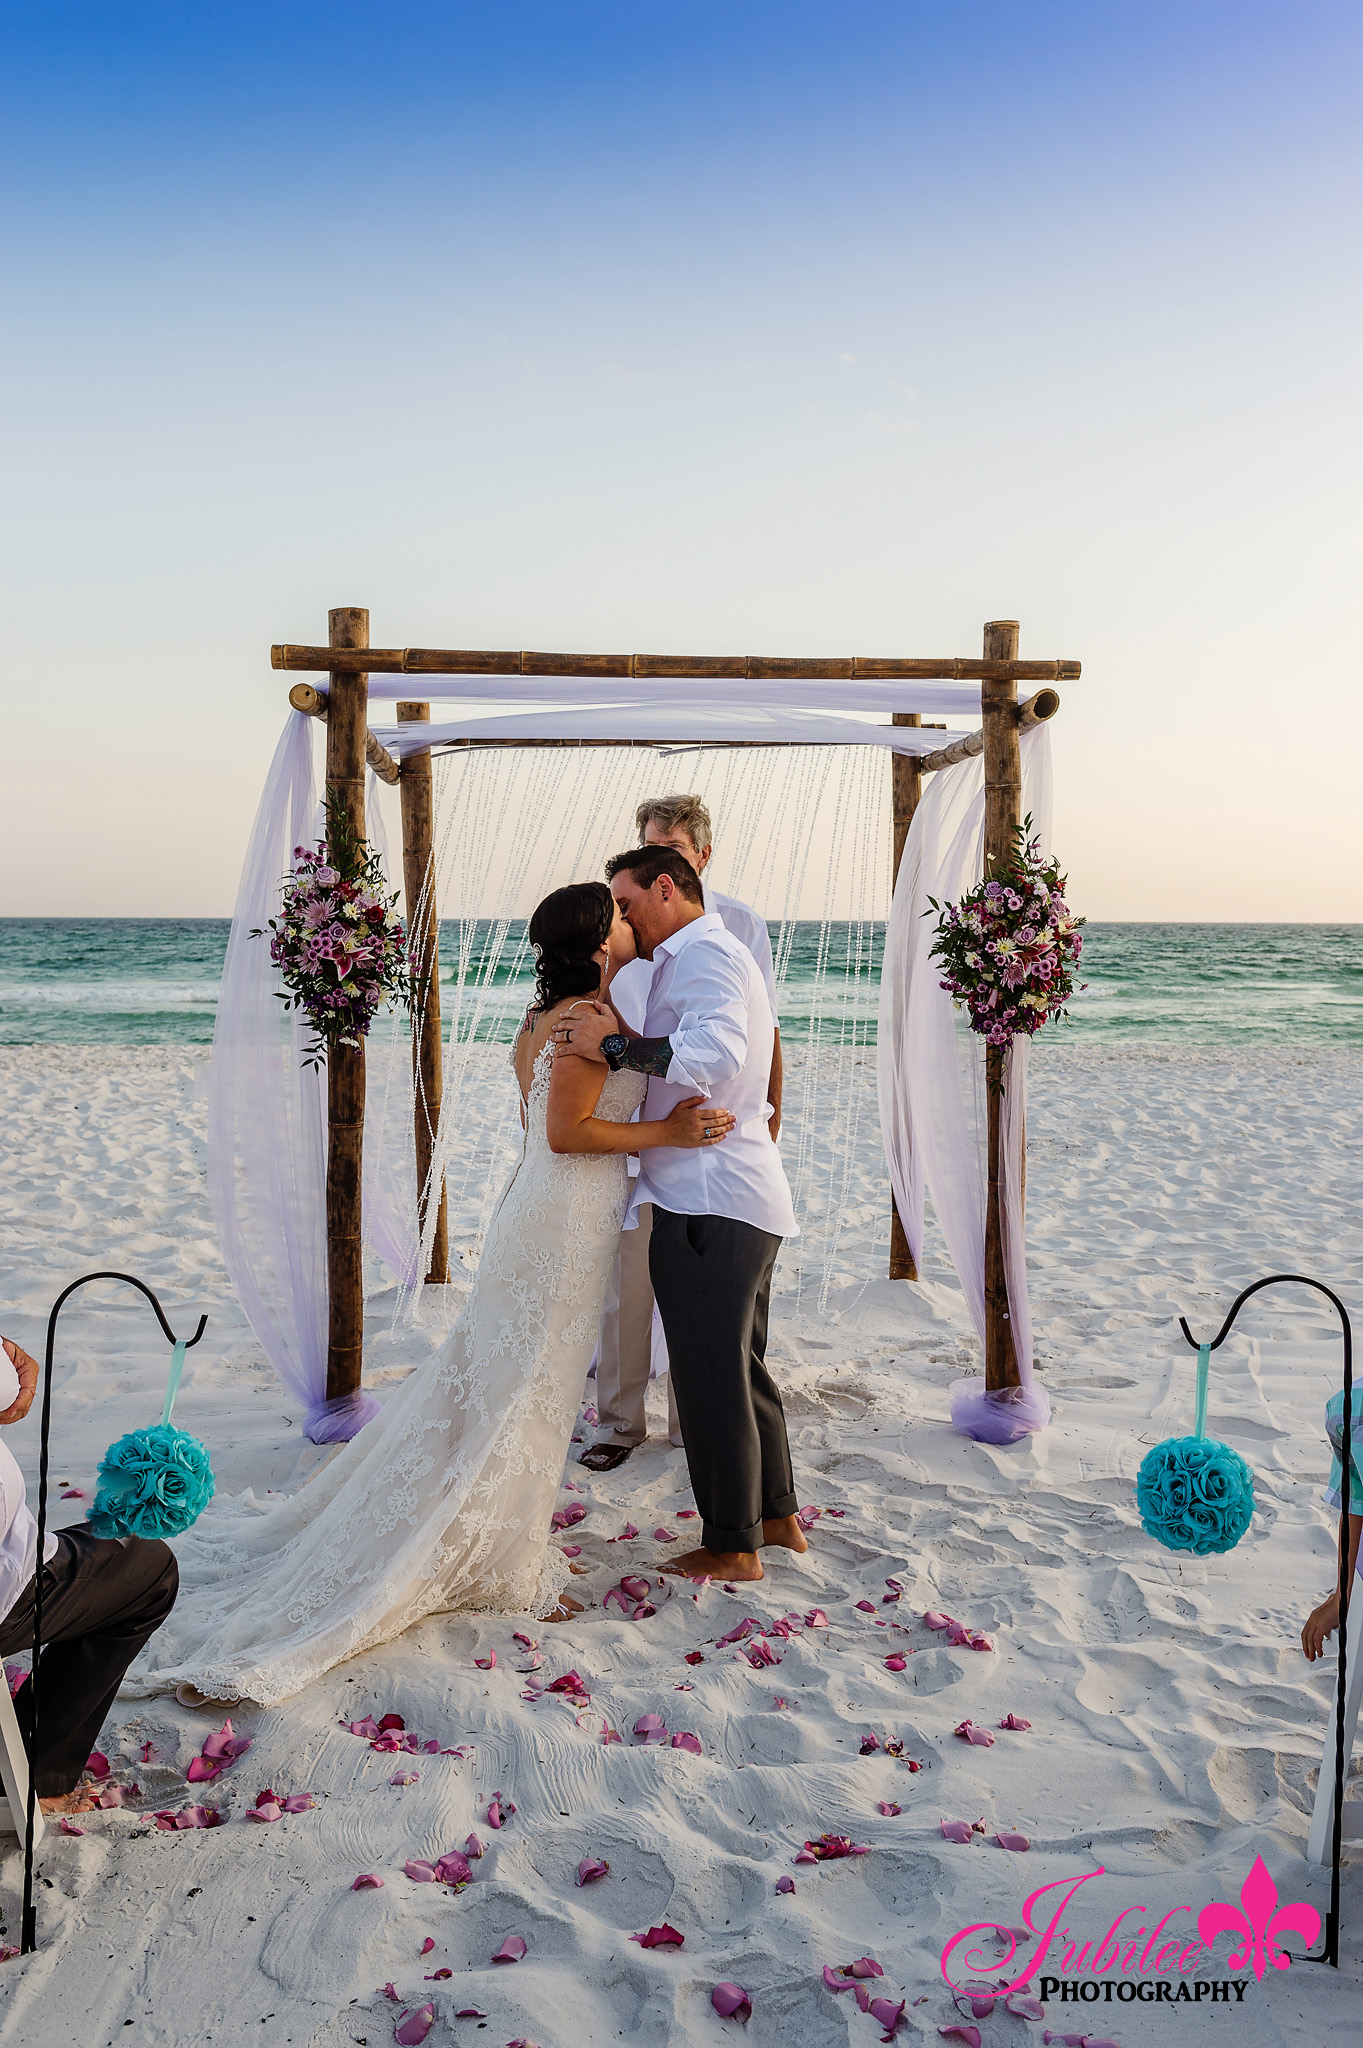 30A_Wedding_Photographer_7164